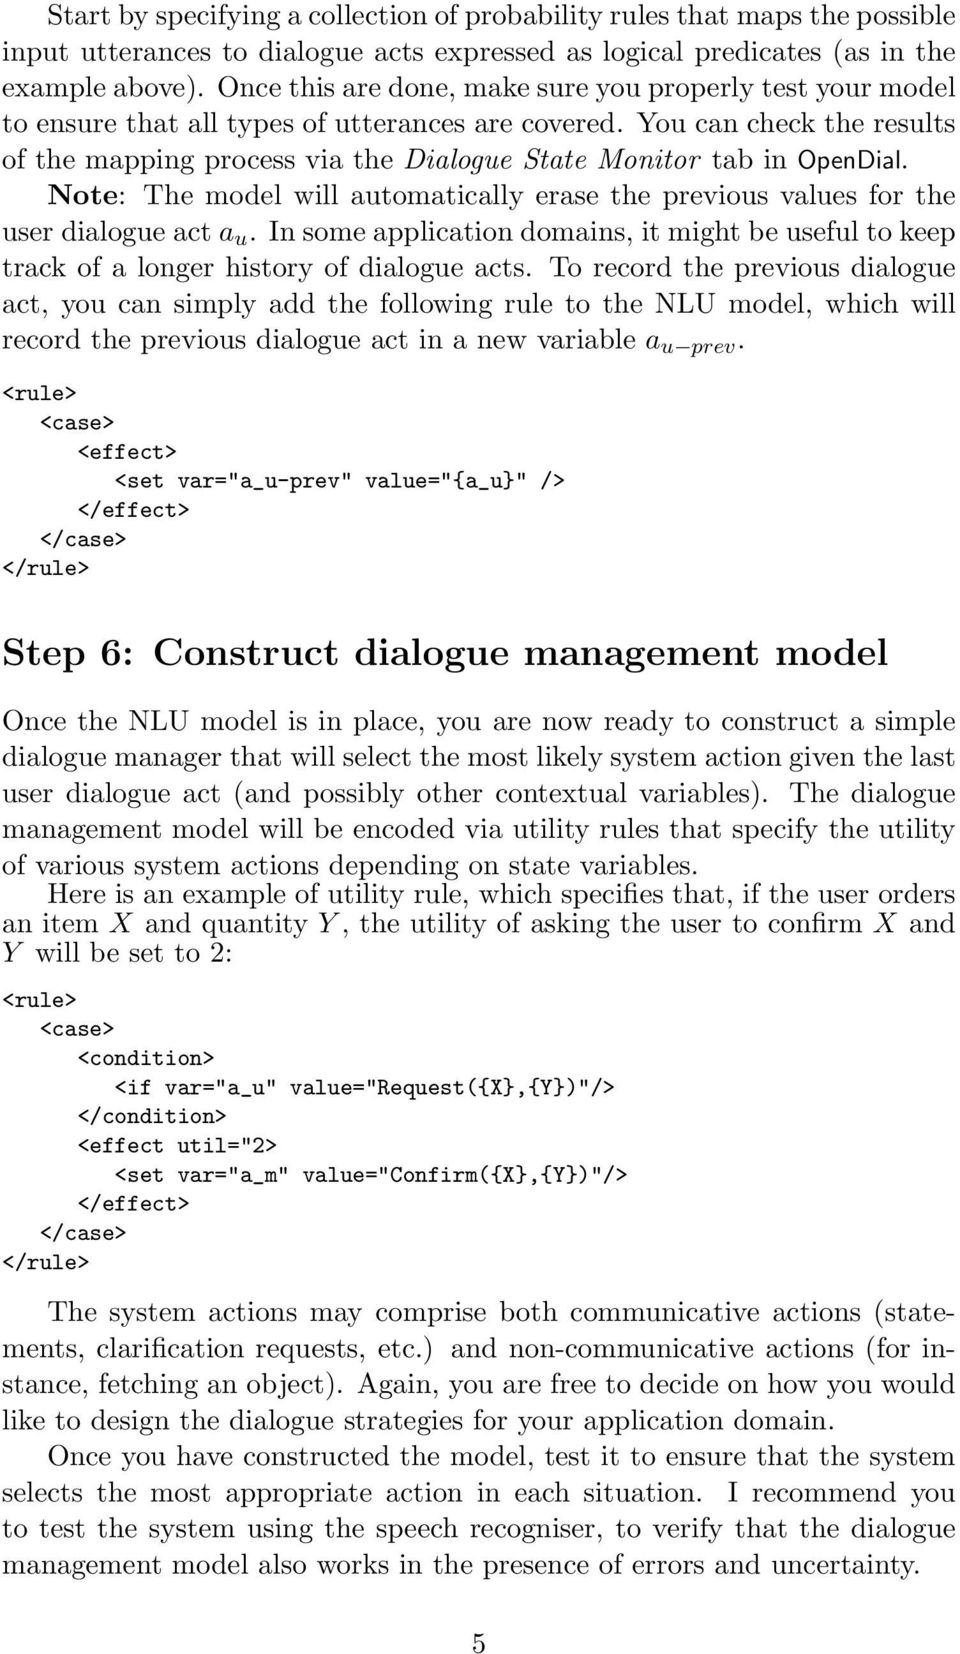 You can check the results of the mapping process via the Dialogue State Monitor tab in OpenDial. Note: The model will automatically erase the previous values for the user dialogue act a u.